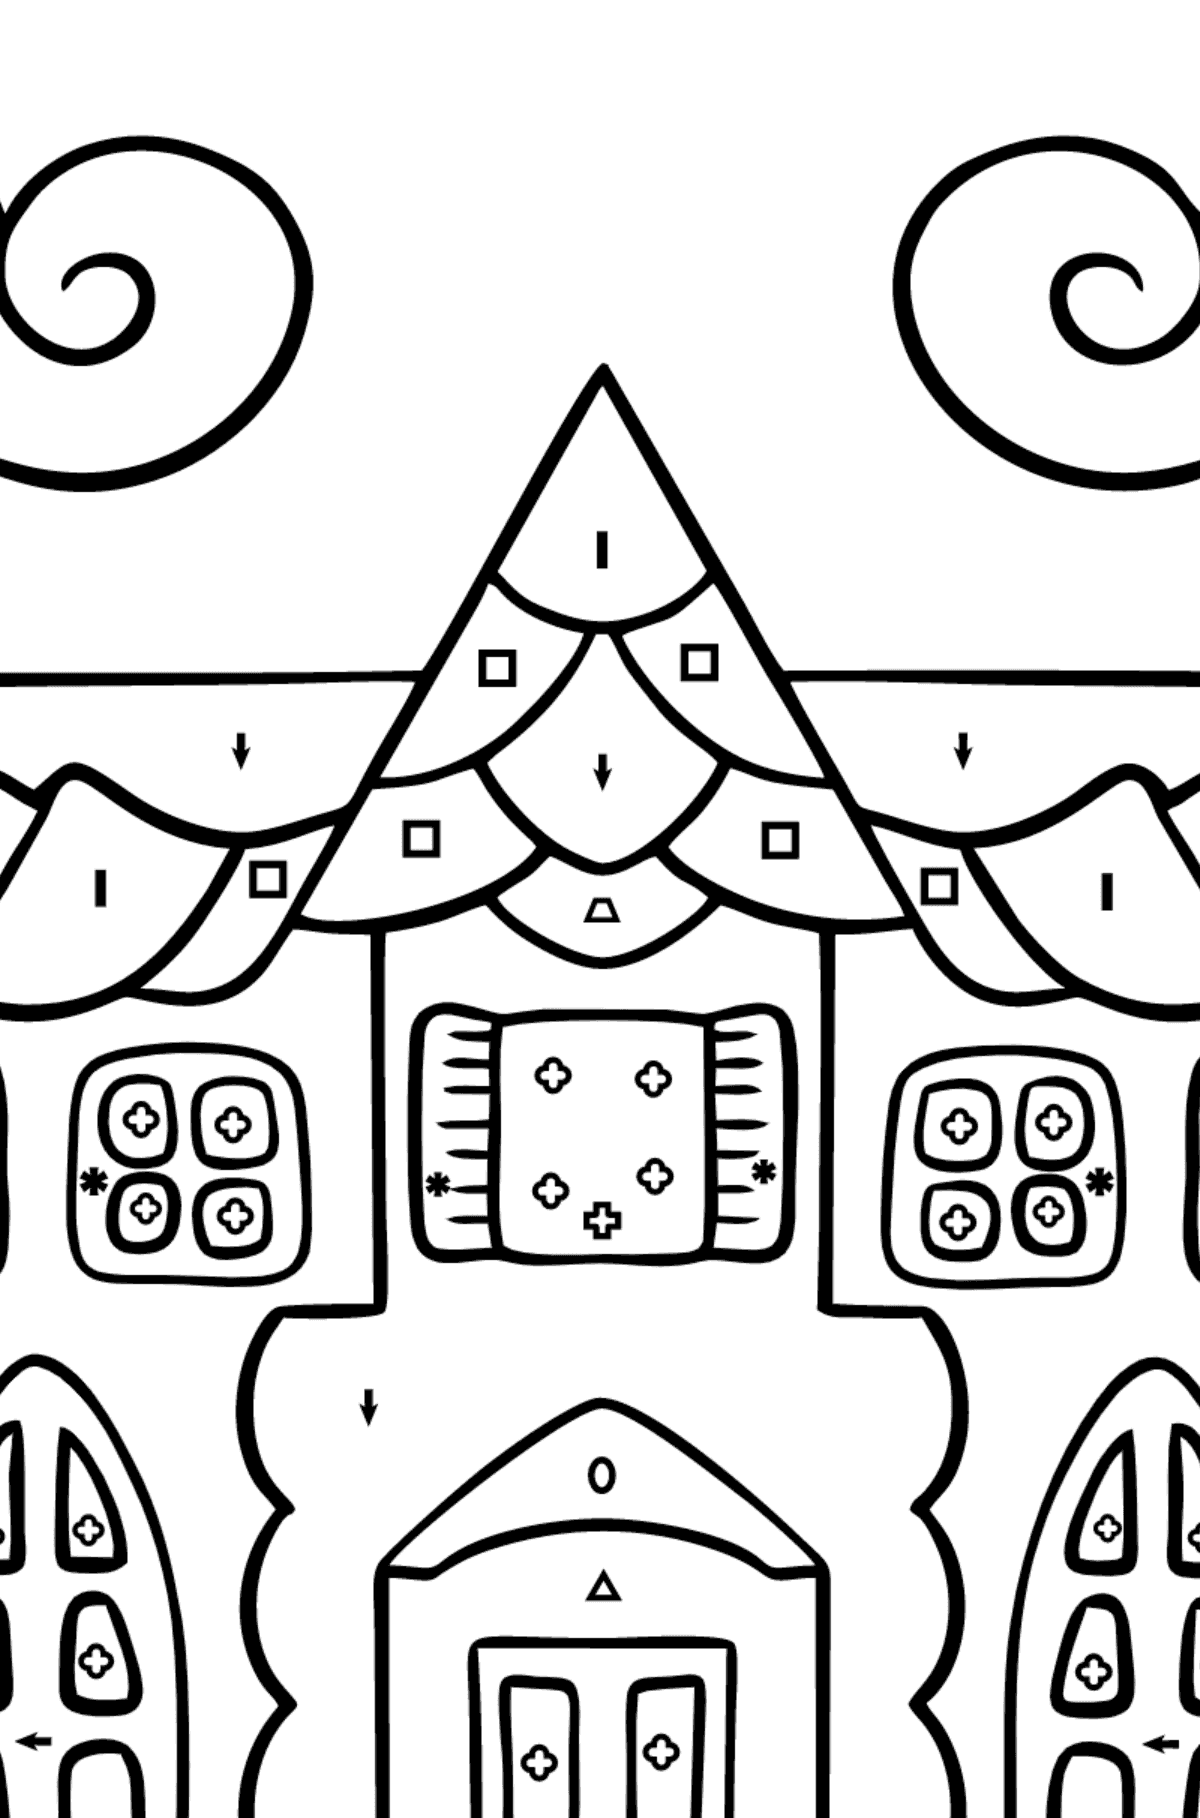 Complex Coloring Page - A House in an Enchanted Kingdom - Coloring by Symbols and Geometric Shapes for Children